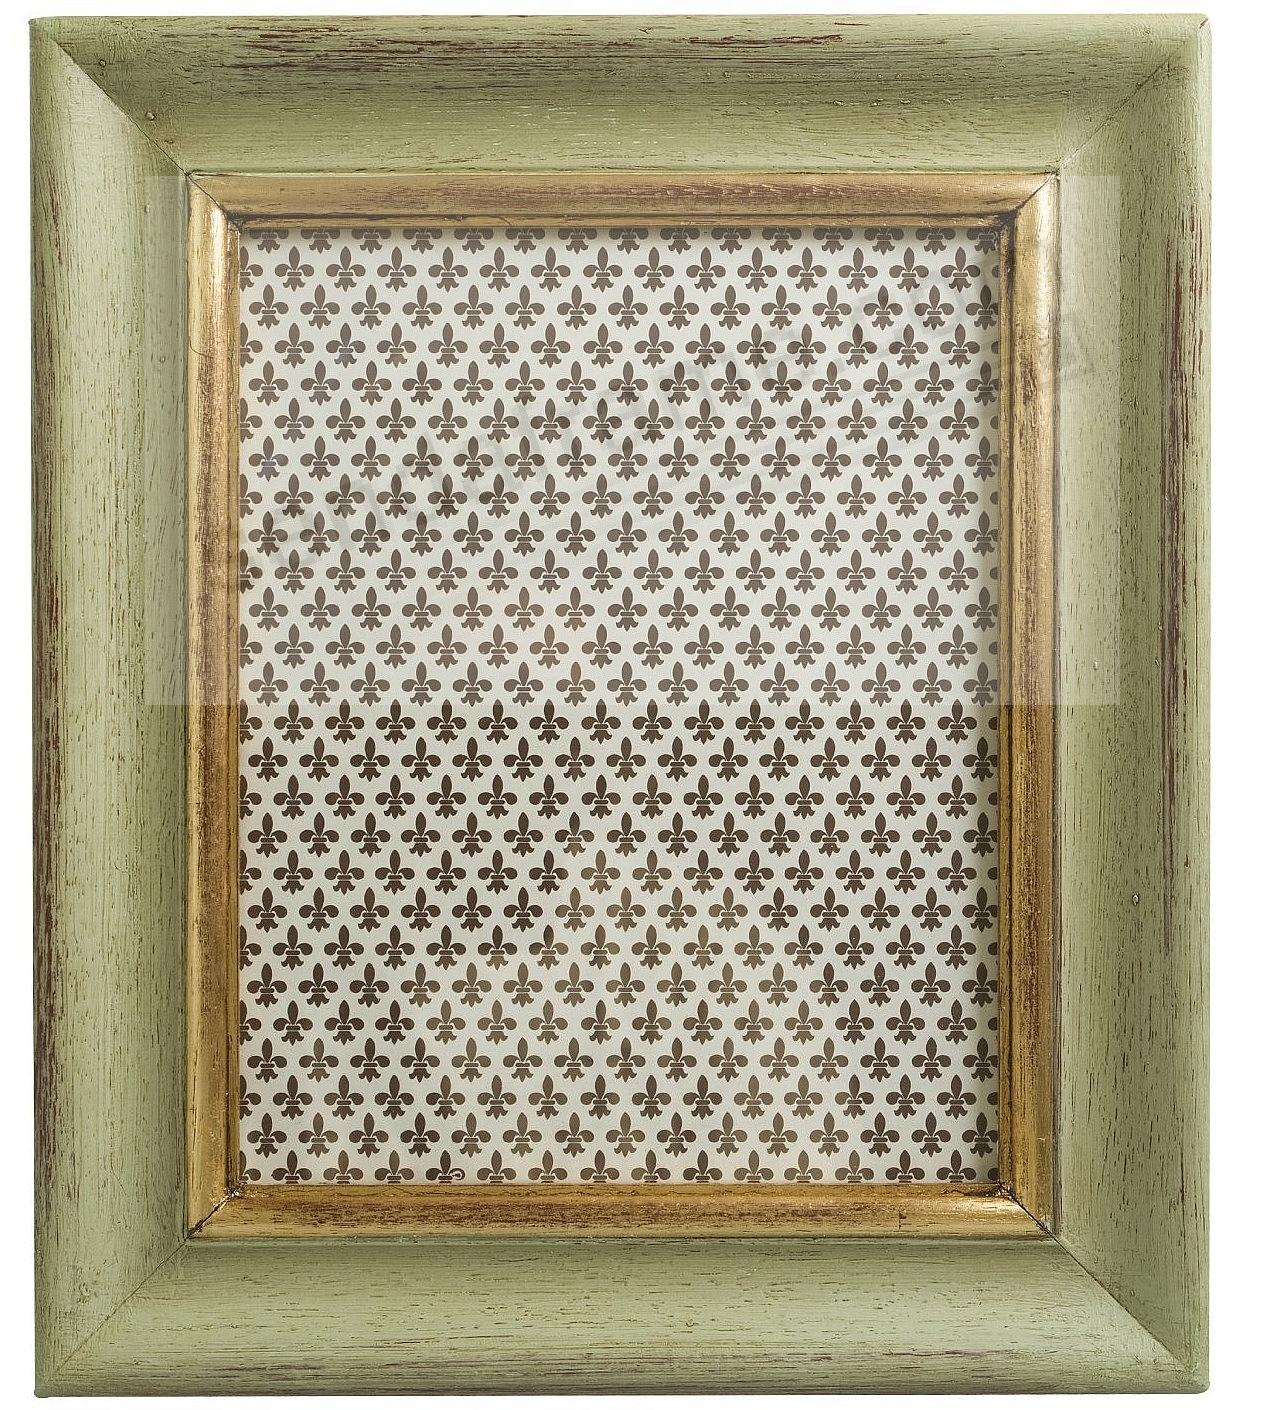 ANTIQUE SAGE GREEN and GOLD Carved Wood 4x6 frame by Eccolo ...